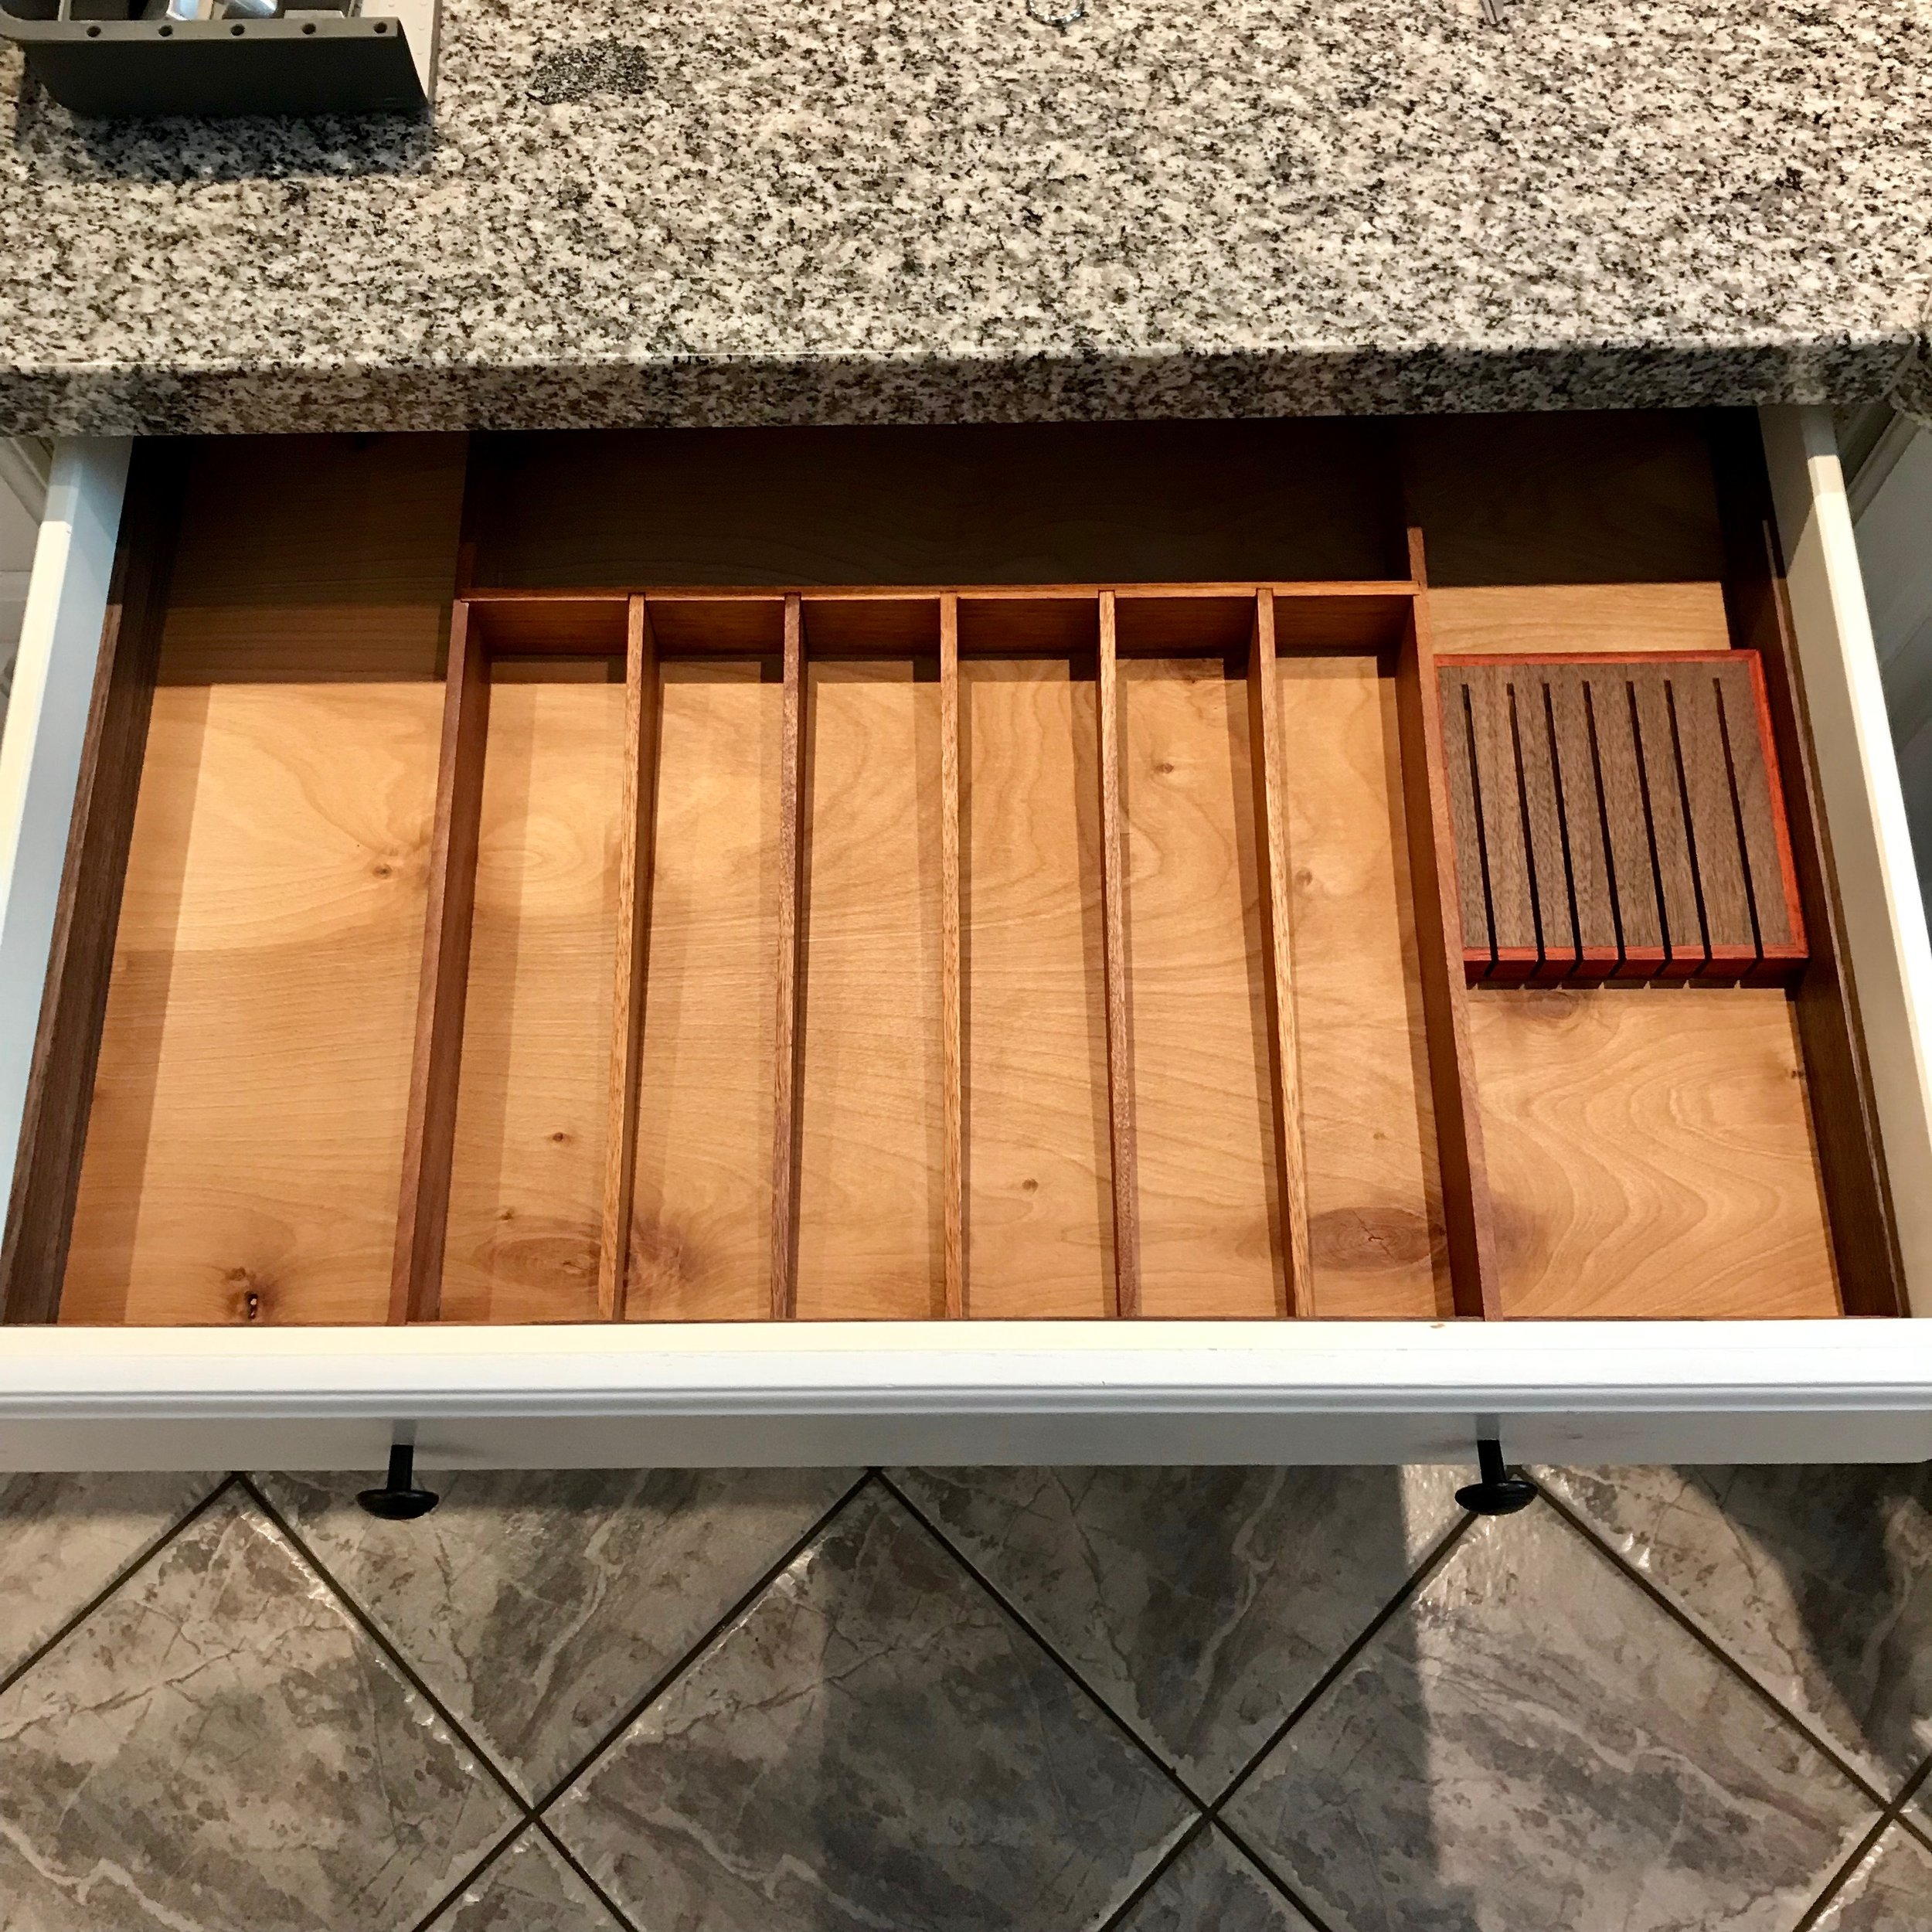 Full View of the Drawer